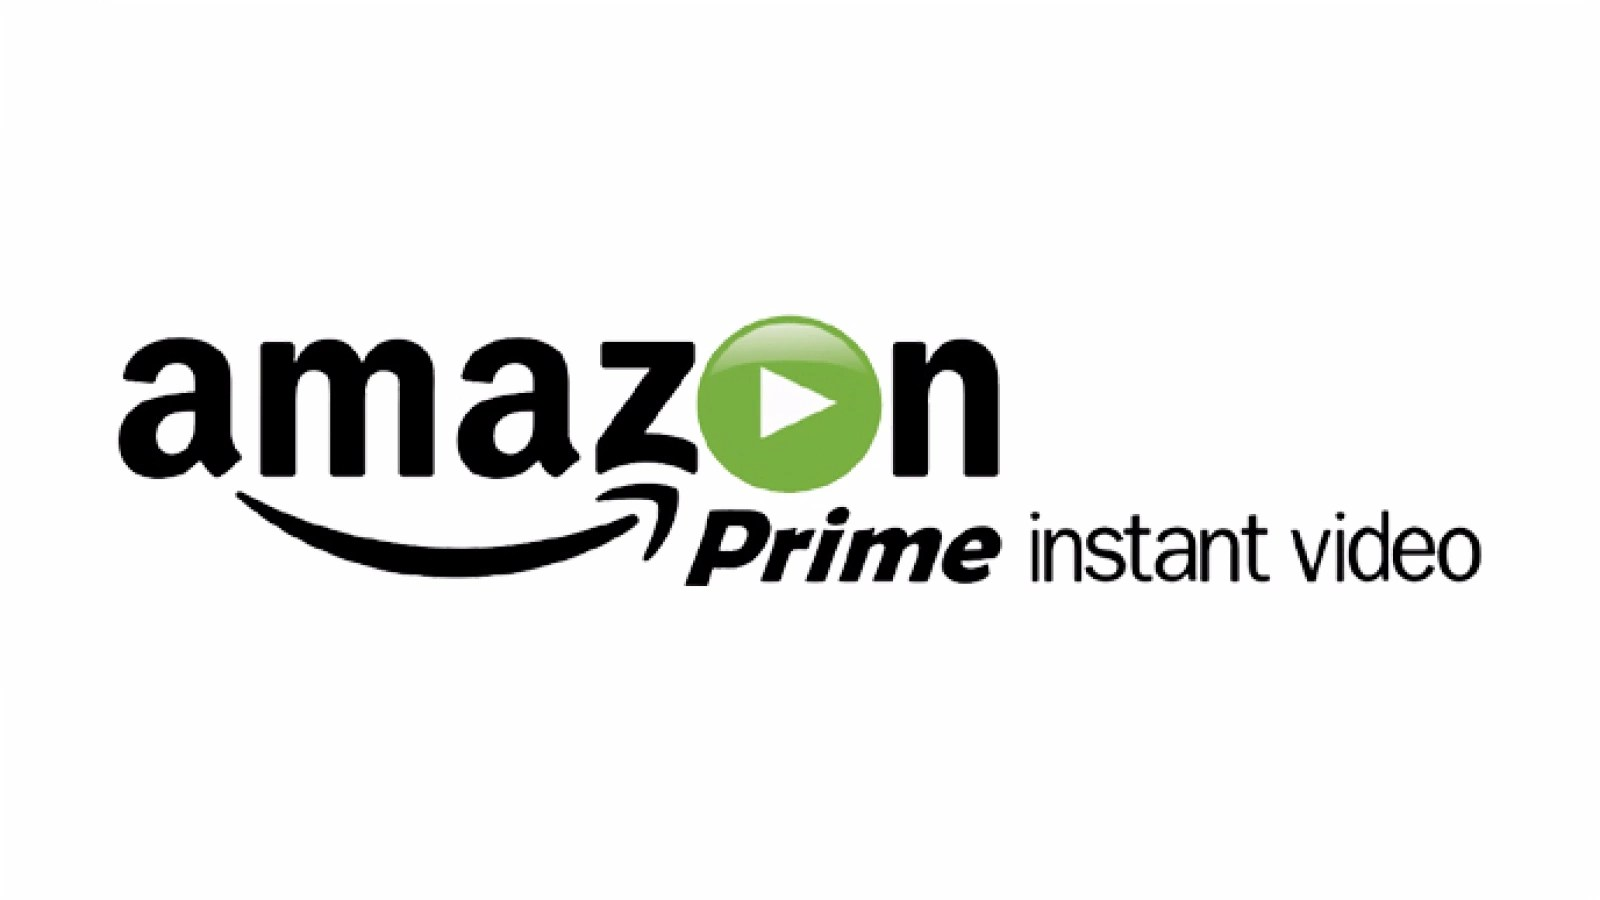 Amazon Prime Storung Bei Instant Video